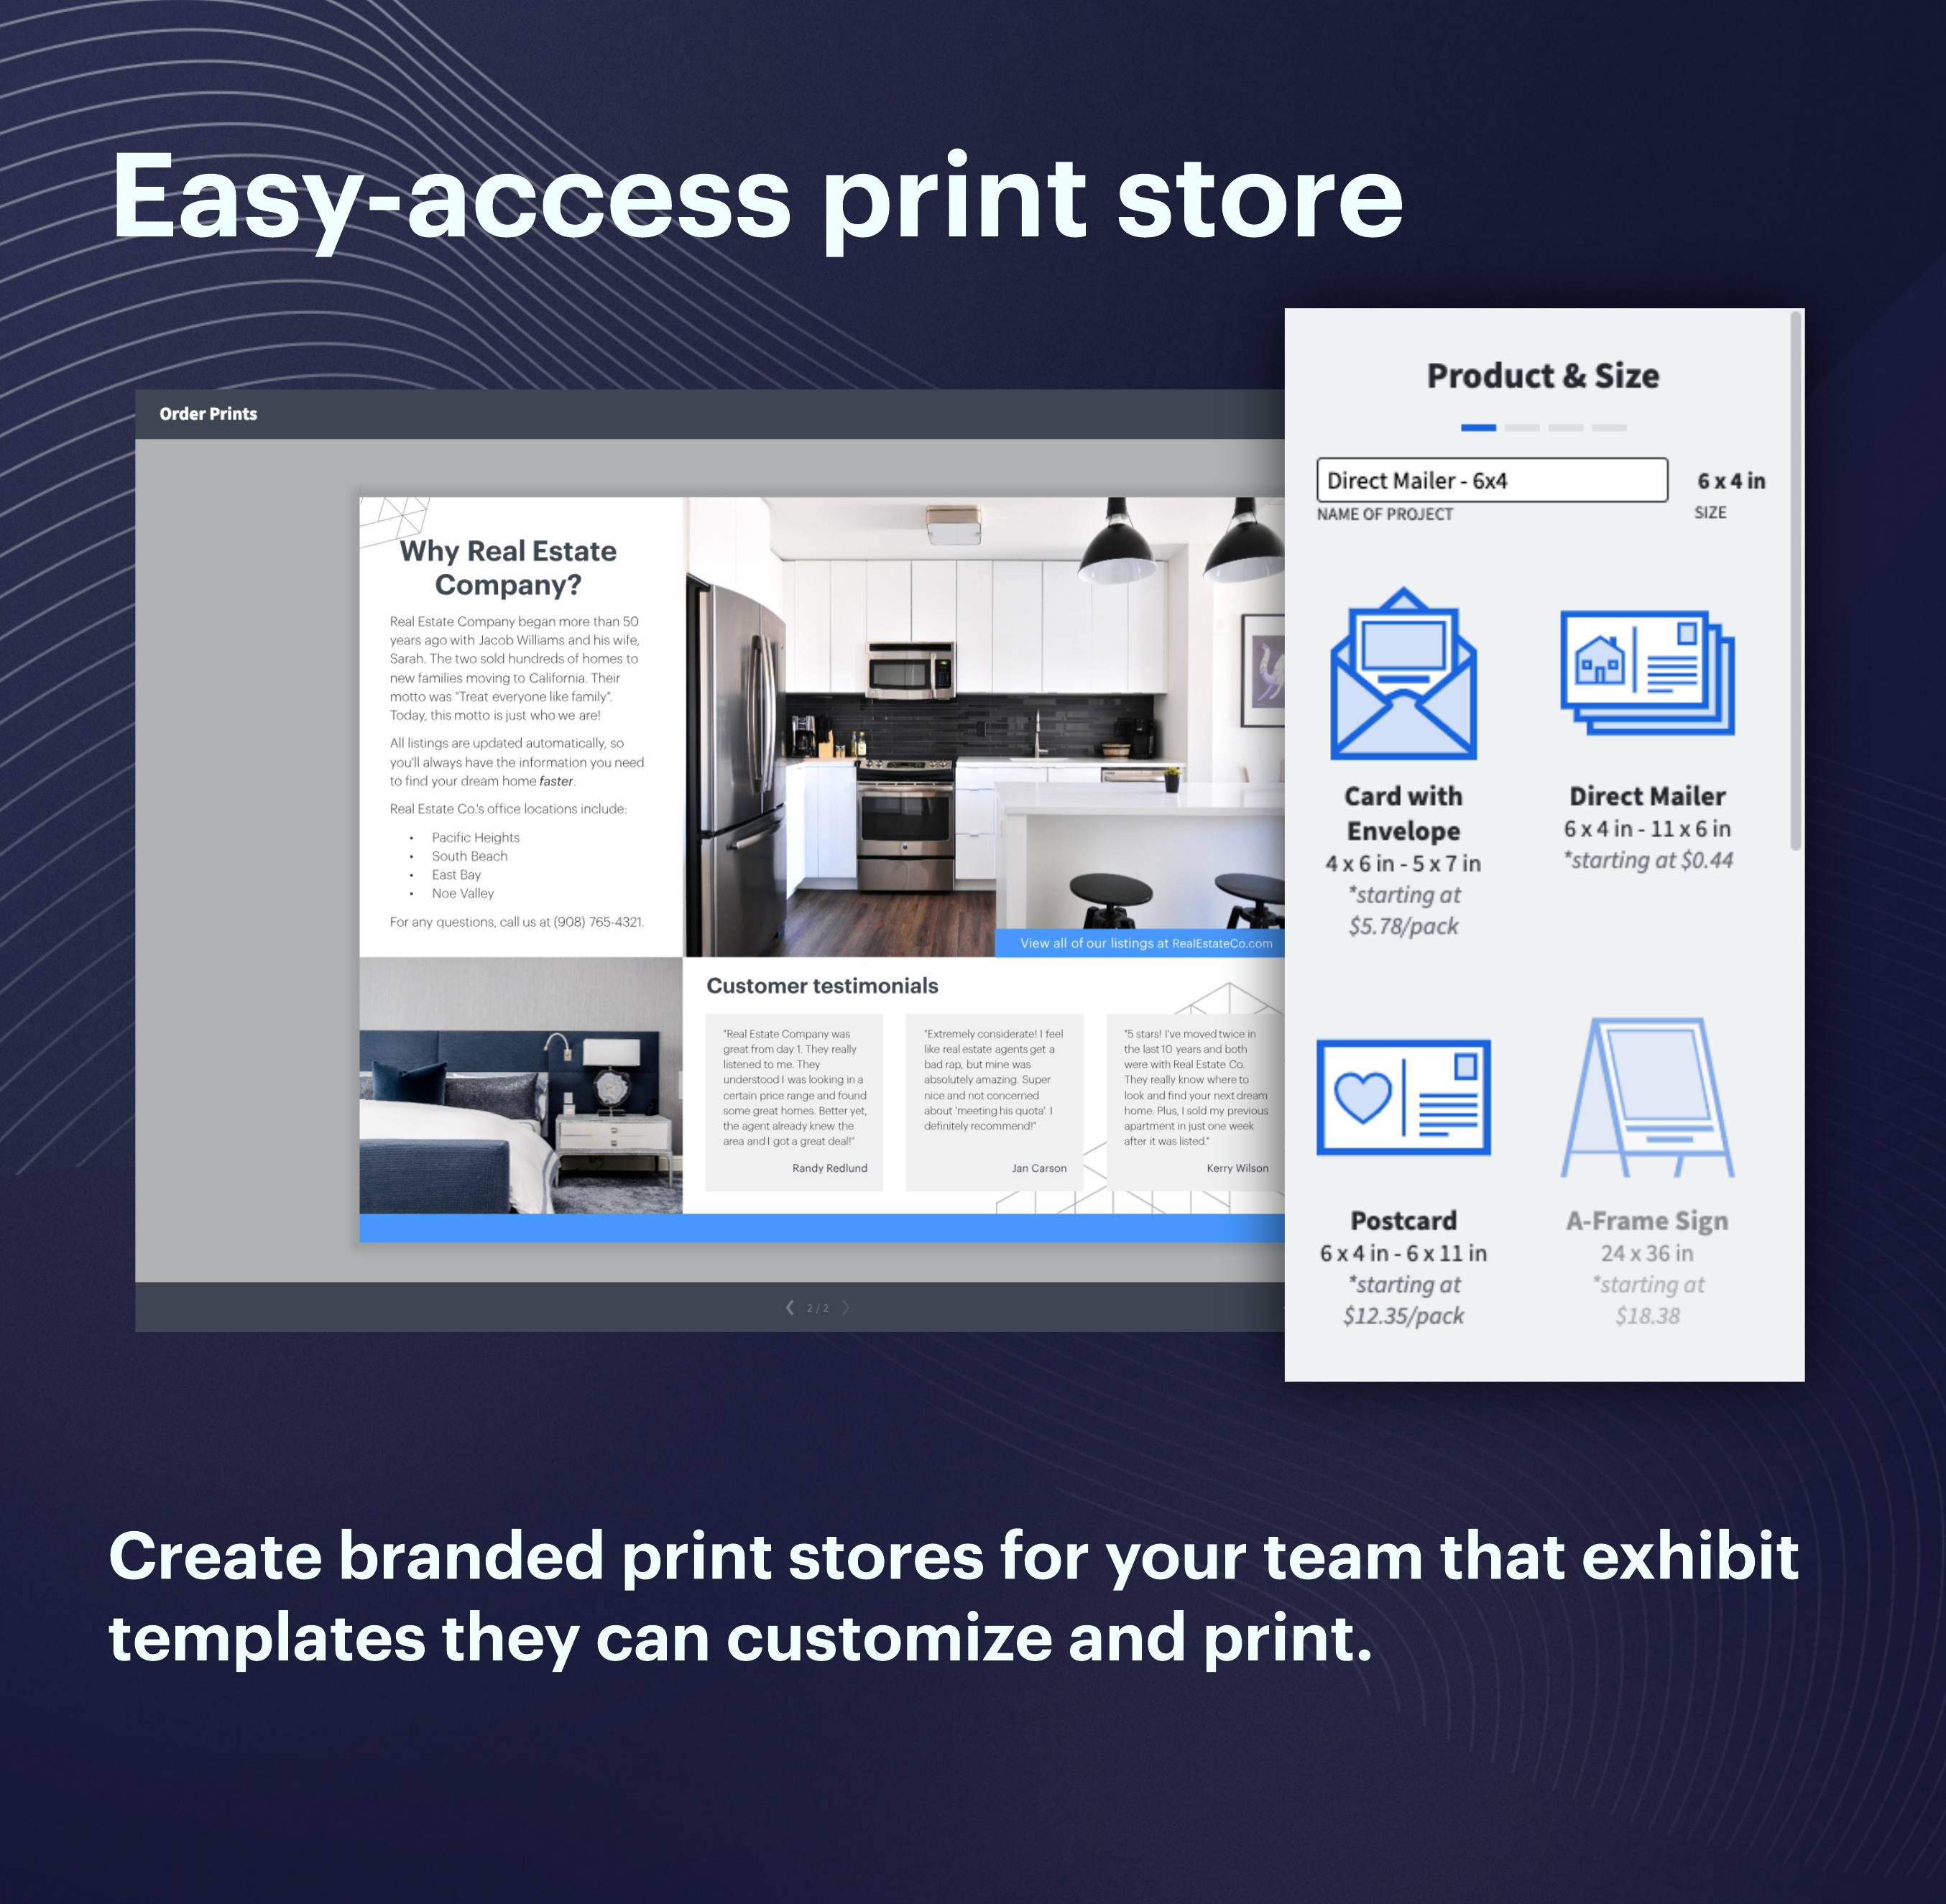 Create branded print stores for your team and exhibit templates they can customize and print.